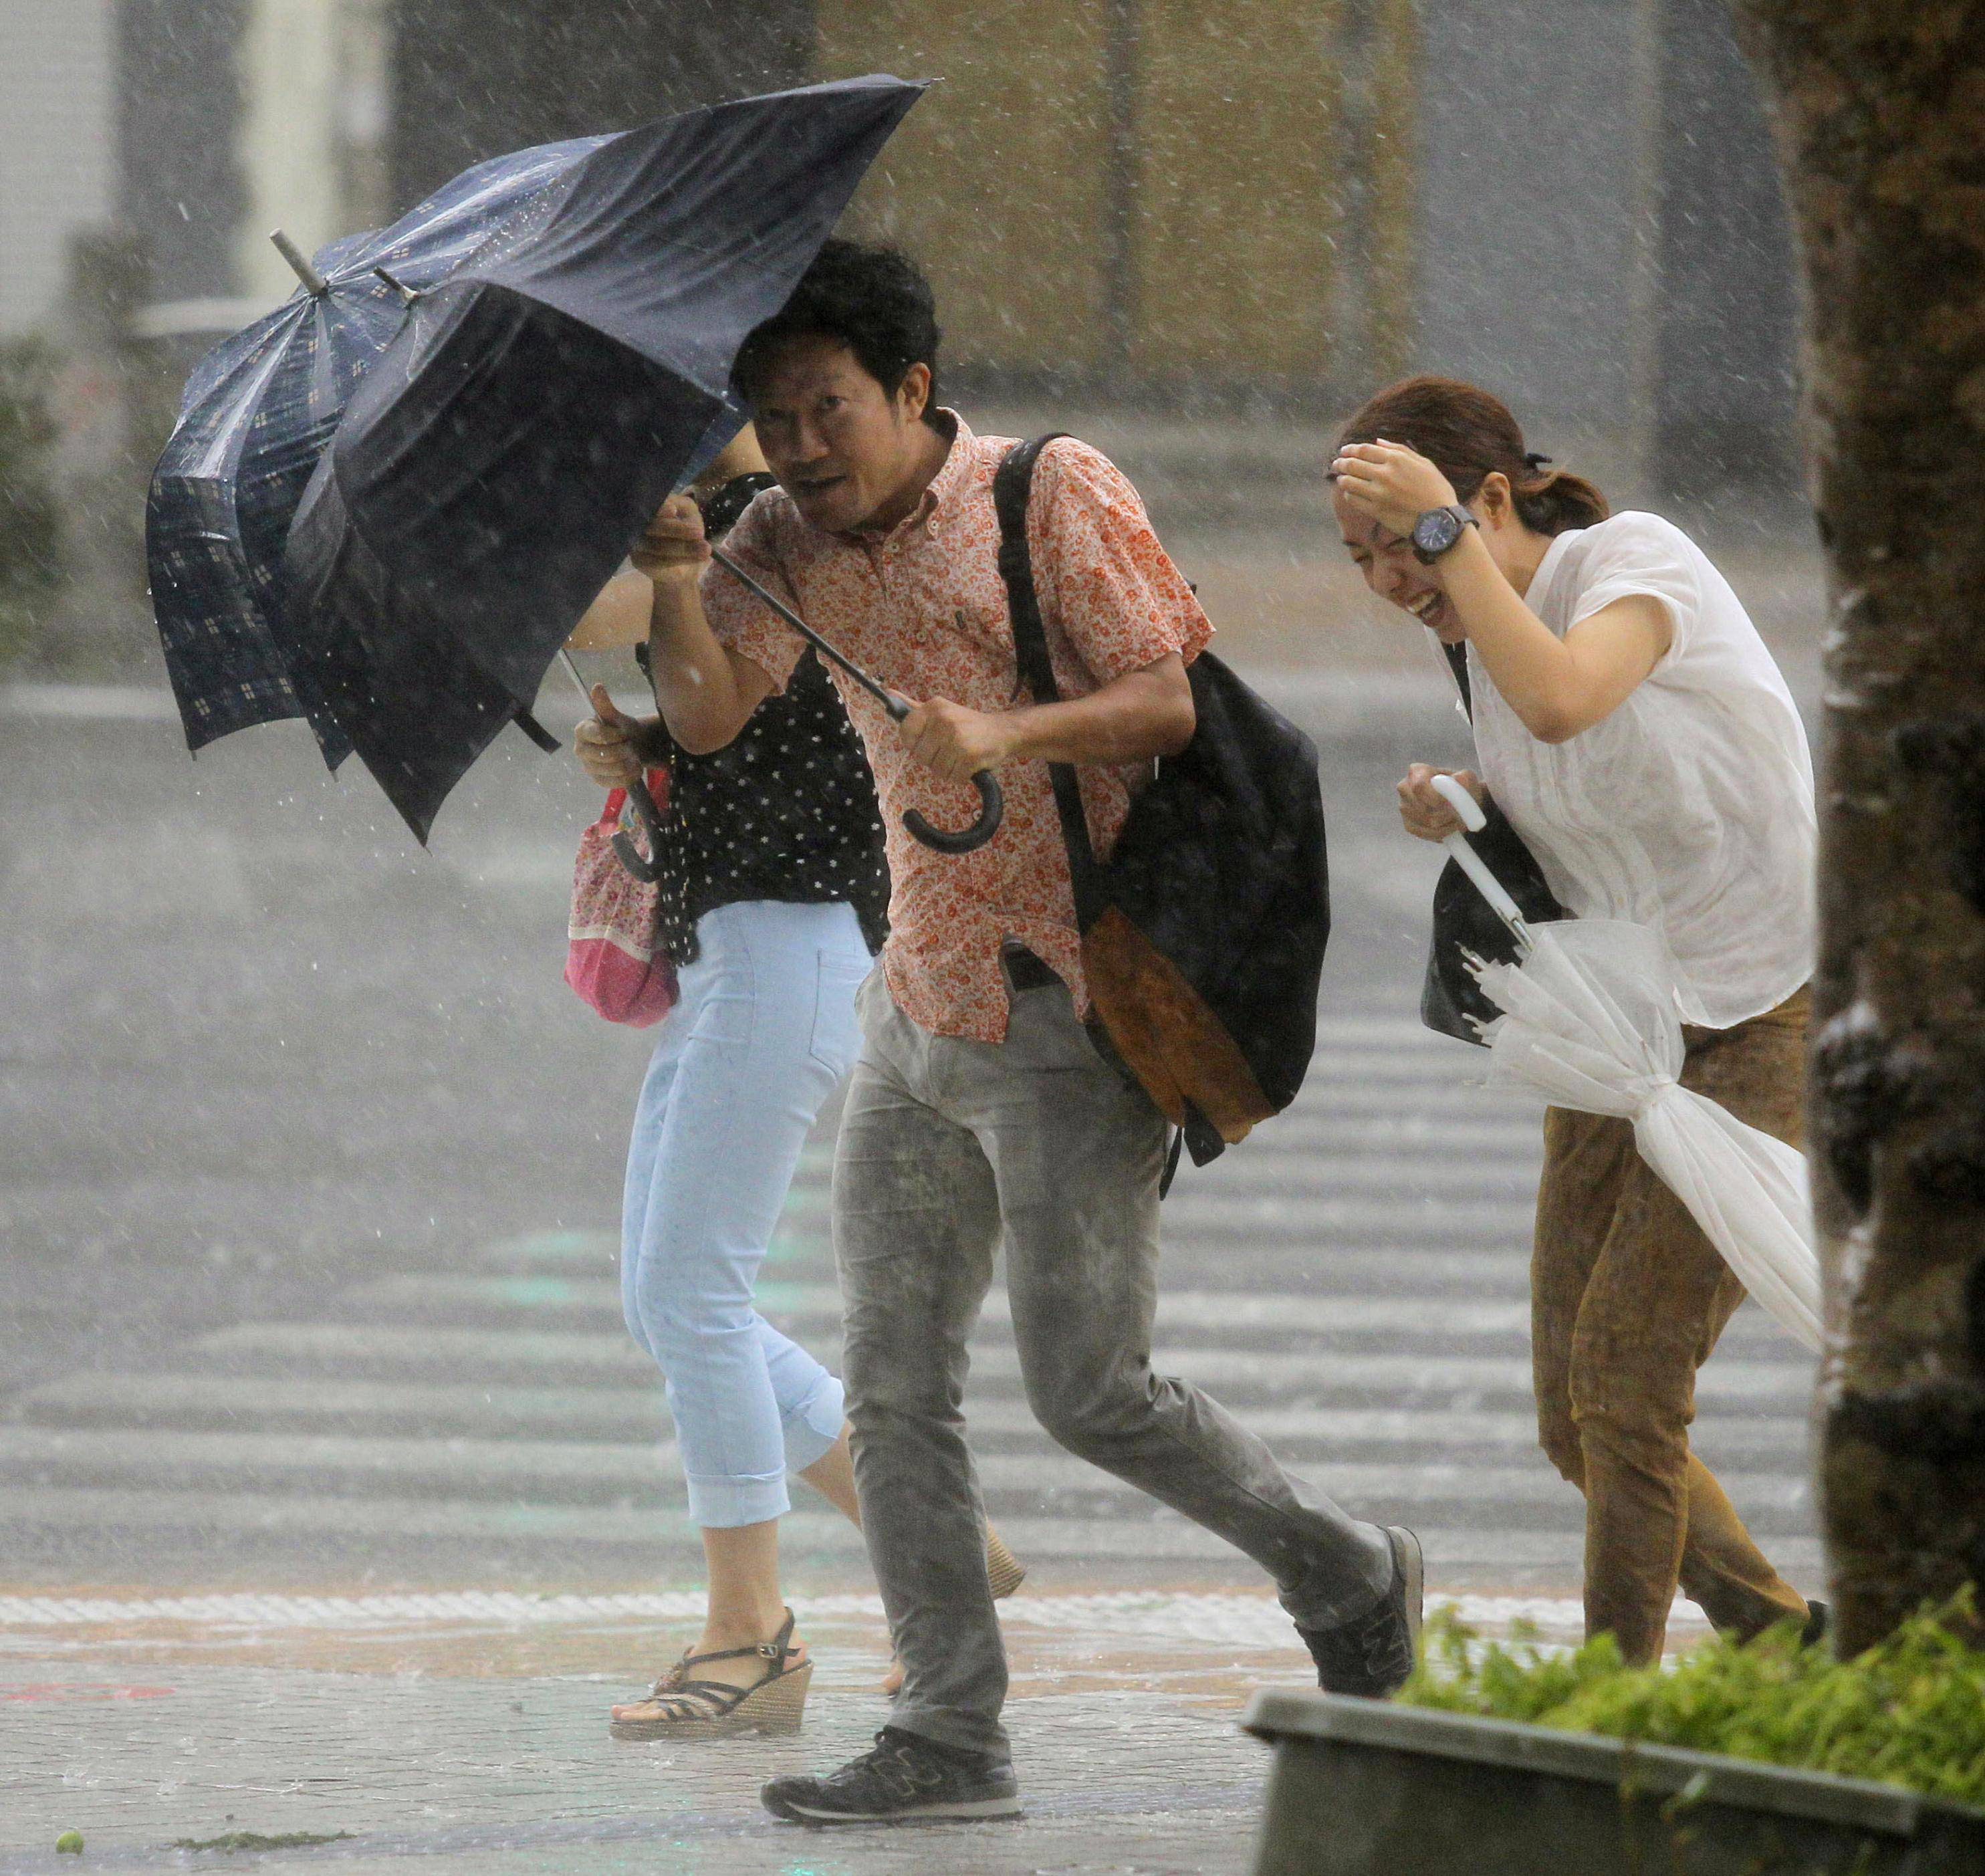 People hold umbrellas through heavy rain caused by a typhoon Wednesday in Naha, Okinawa. A powerful storm slammed through the southwestern Japanese island of Okinawa, leaving at least 28 people injured and 63,000 homes without power before swerving toward the bigger island of Kyushu on Wednesday.